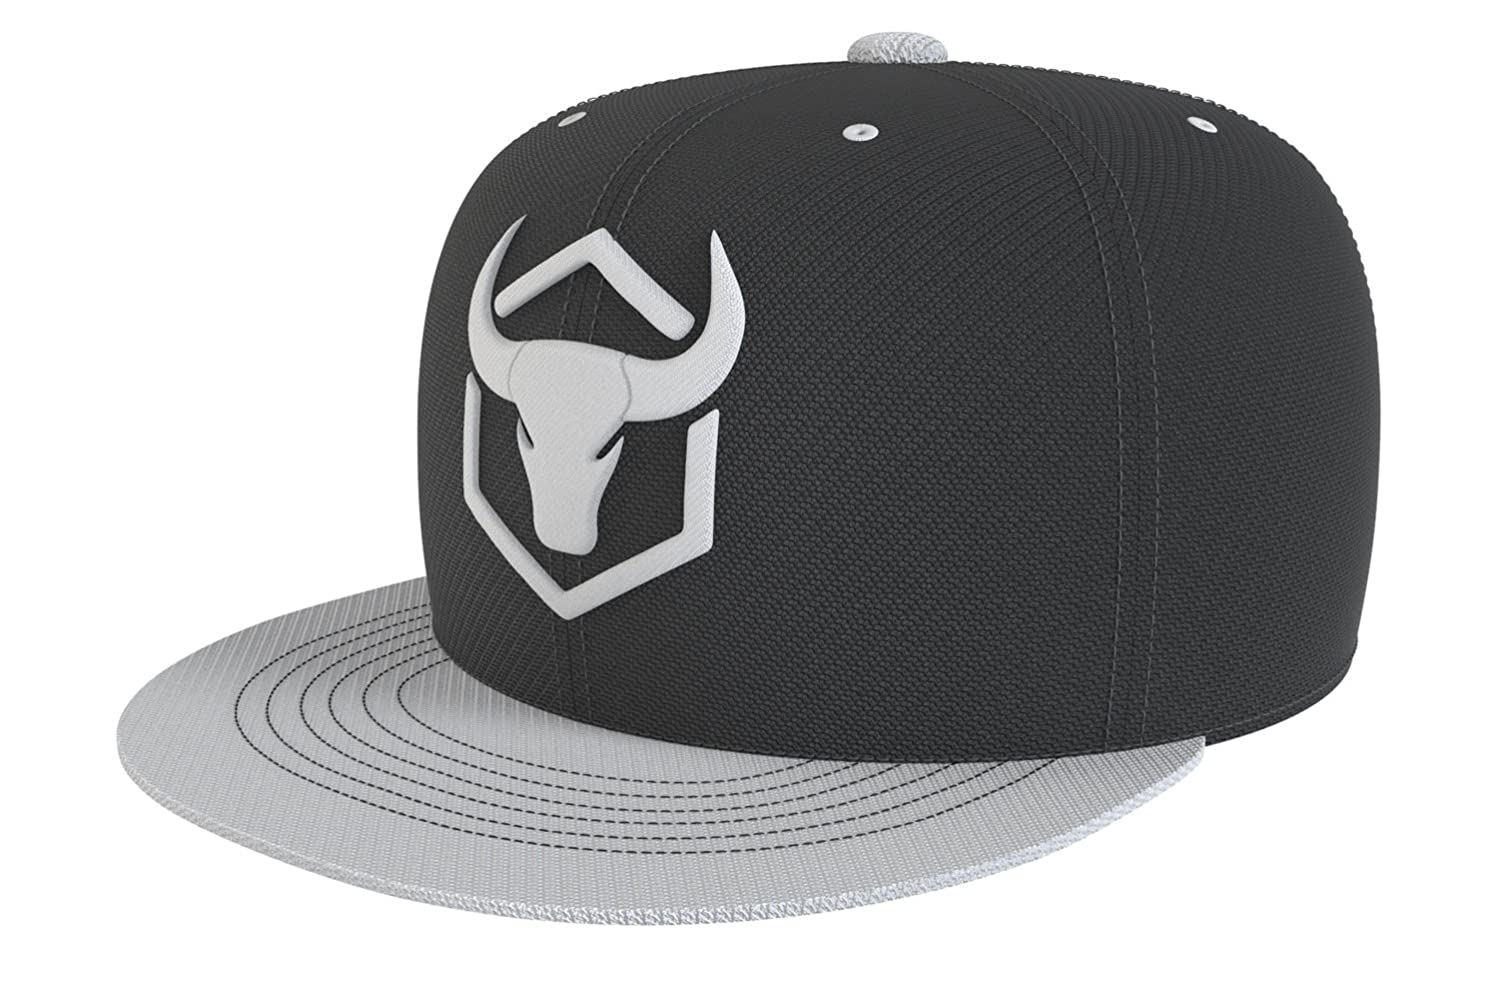 Iron Bull Strength Snapback - Adjustable Hat - Flat Bill Baseball Cap Snap Hats (Army Green) at Amazon Mens Clothing store: